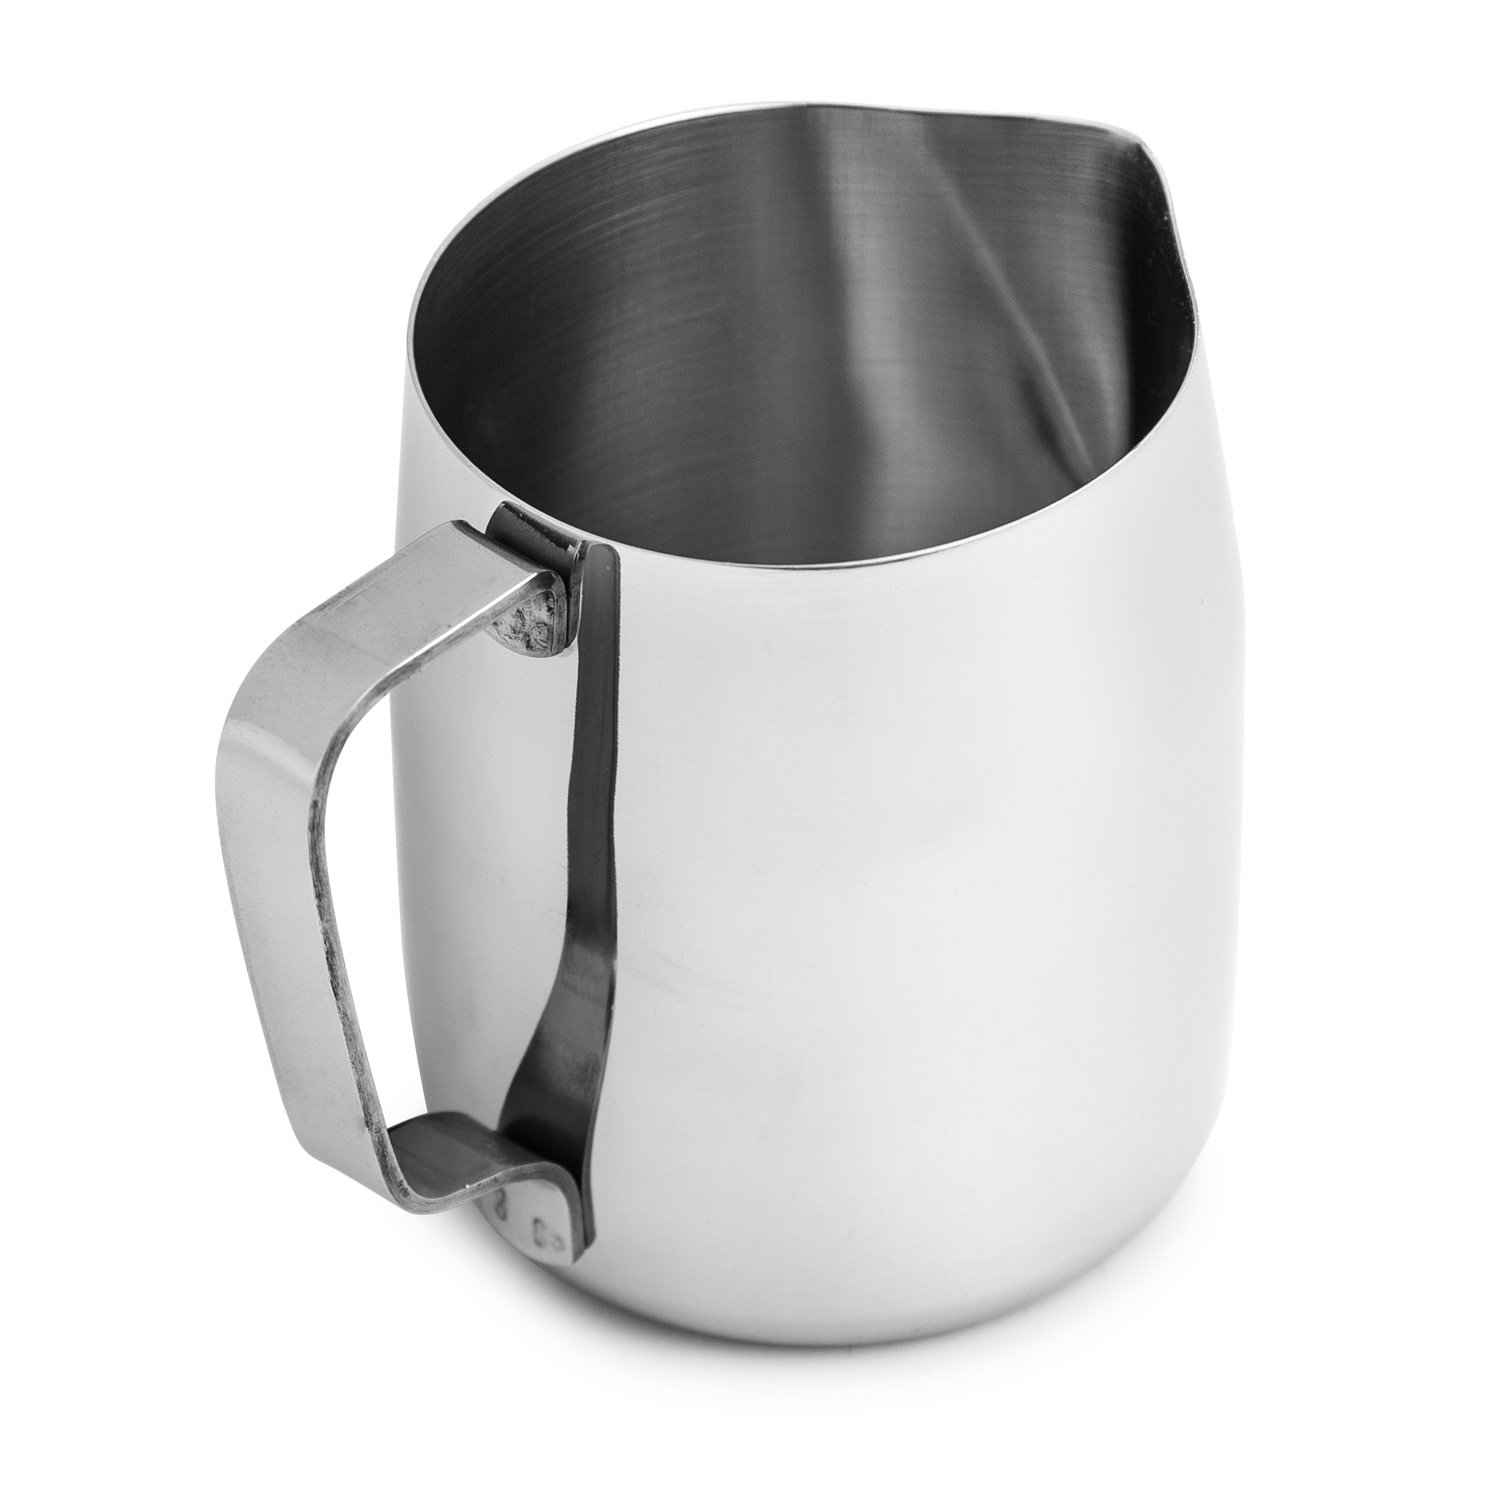 Chef's Star Stainless Steel Frothing Pitcher, 12 Ounce Chefs Star COMINHKPR80756